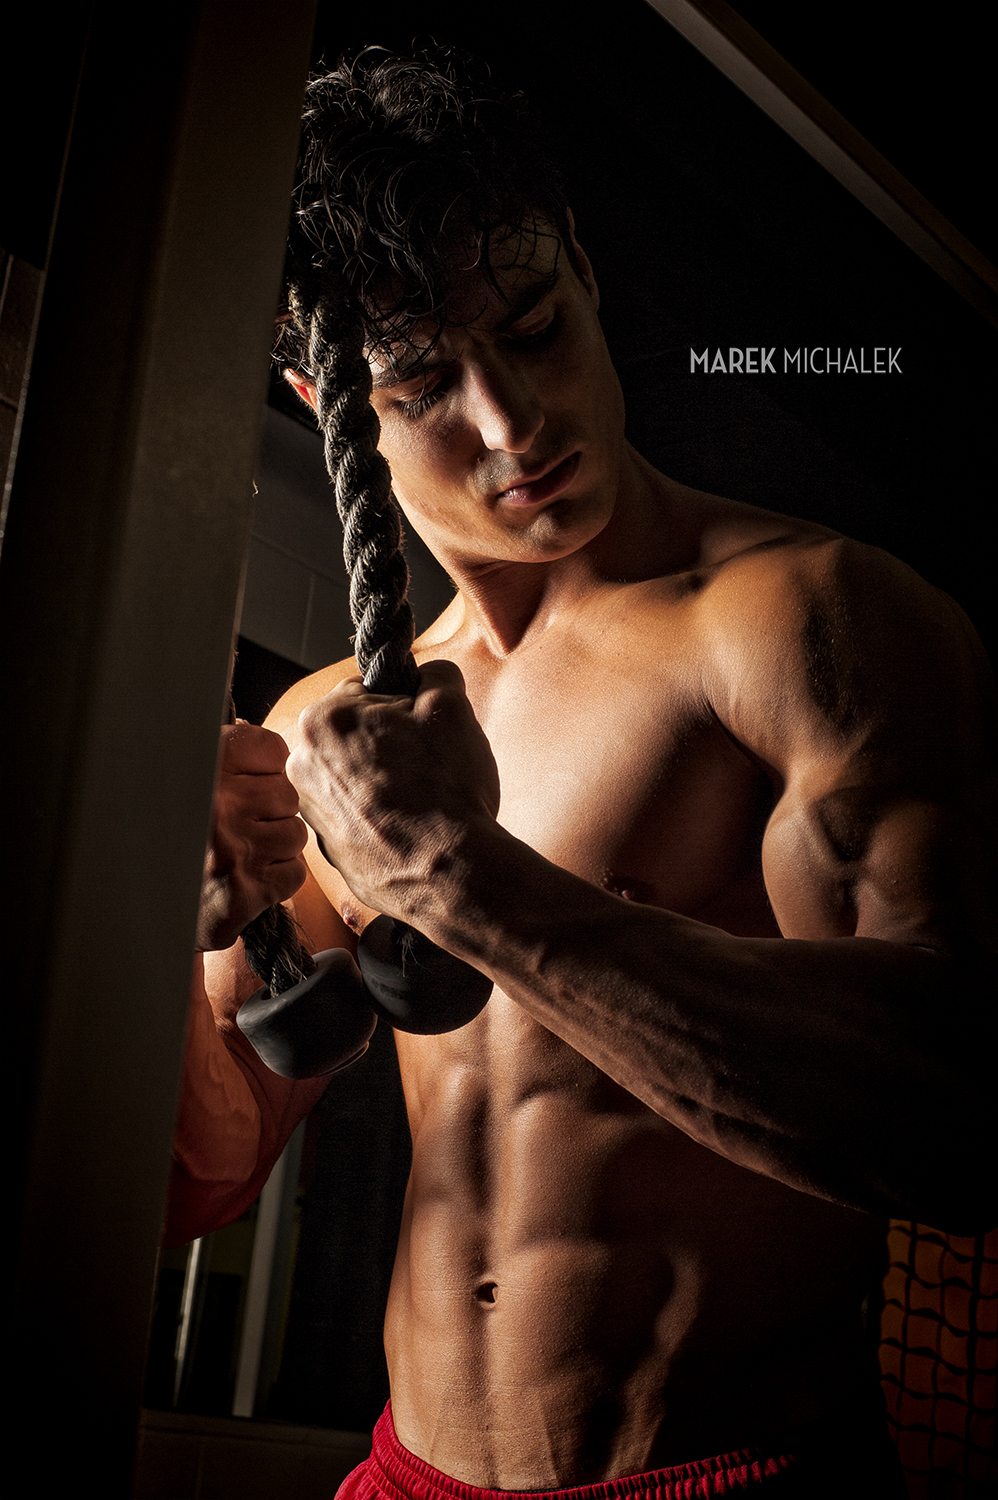 Hamilton Fitness Photographer - Marek Michalek 06.jpg